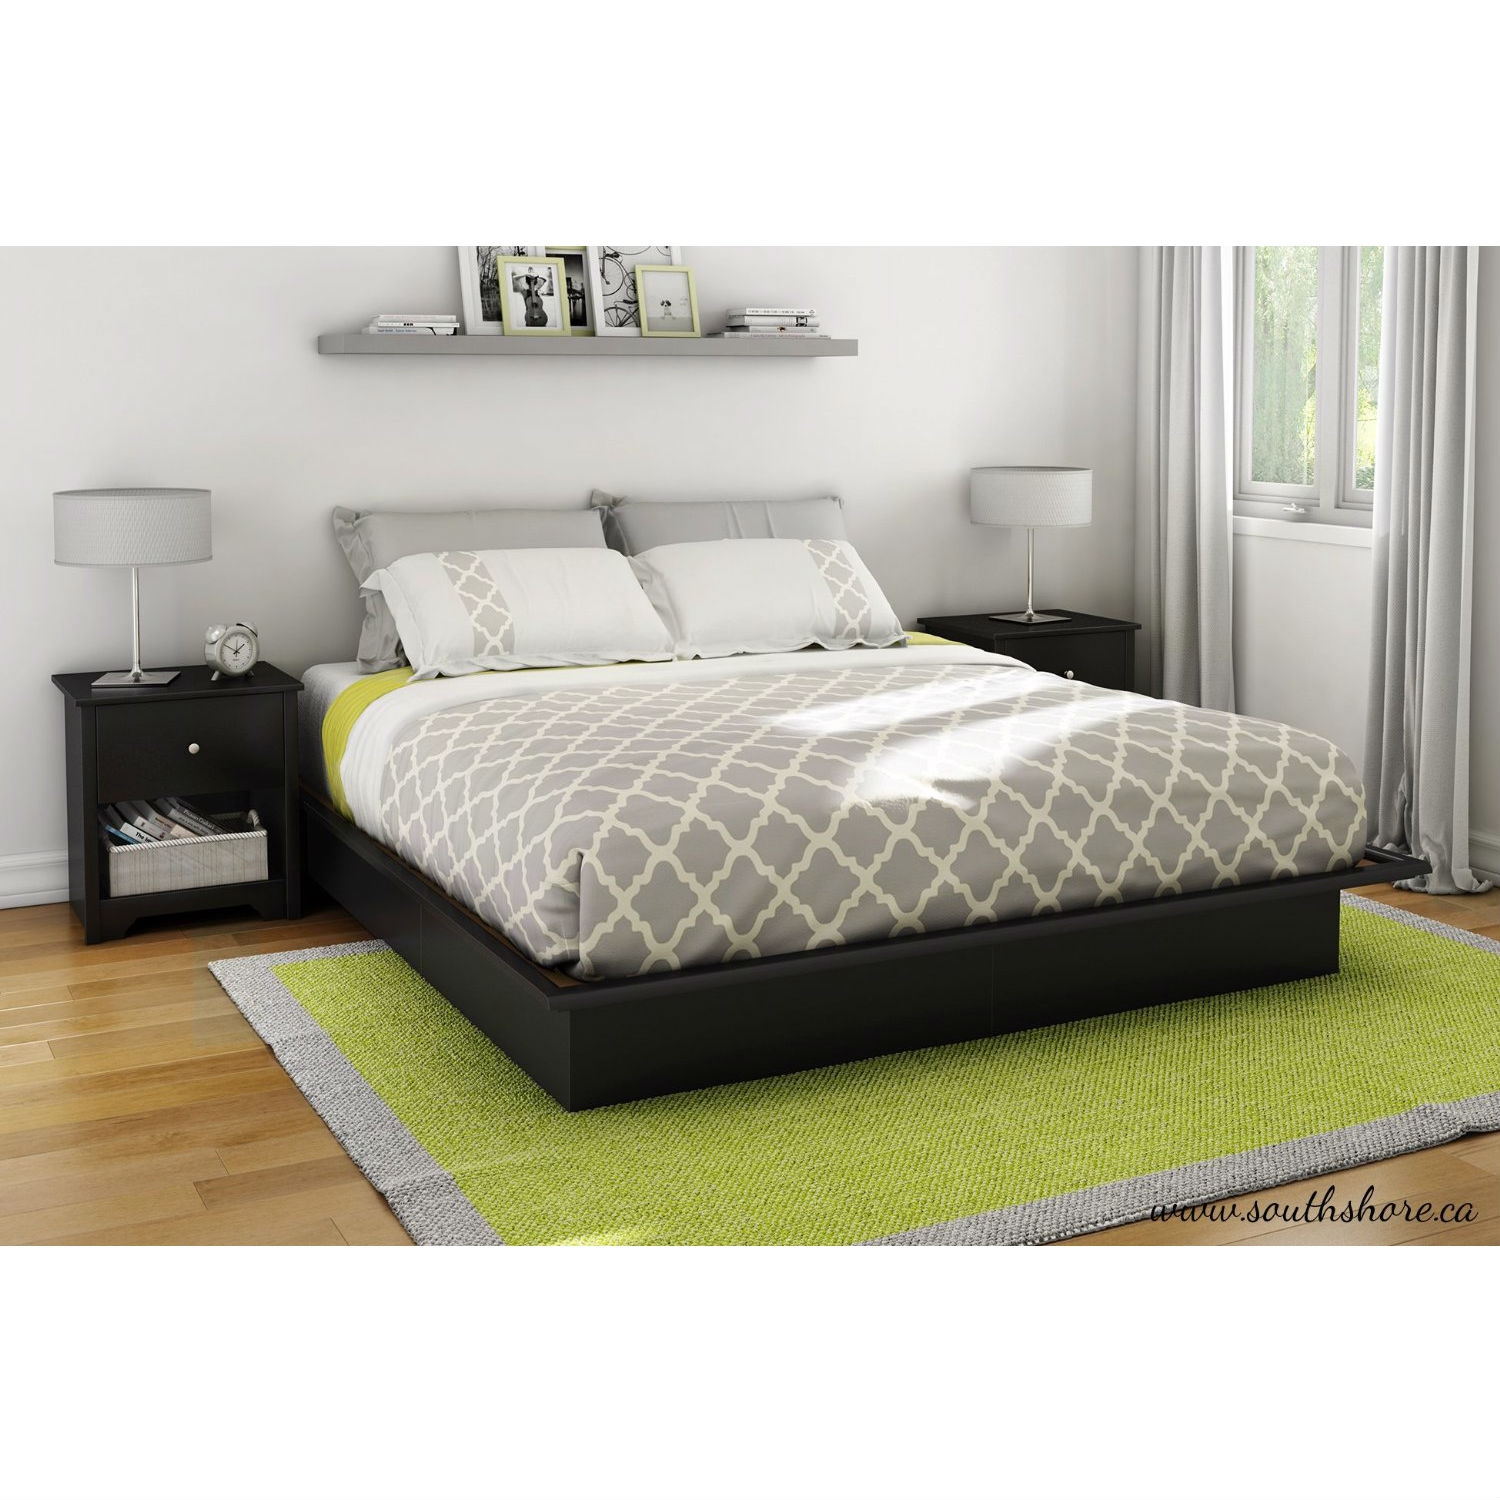 Modern Platform Bed Frame King